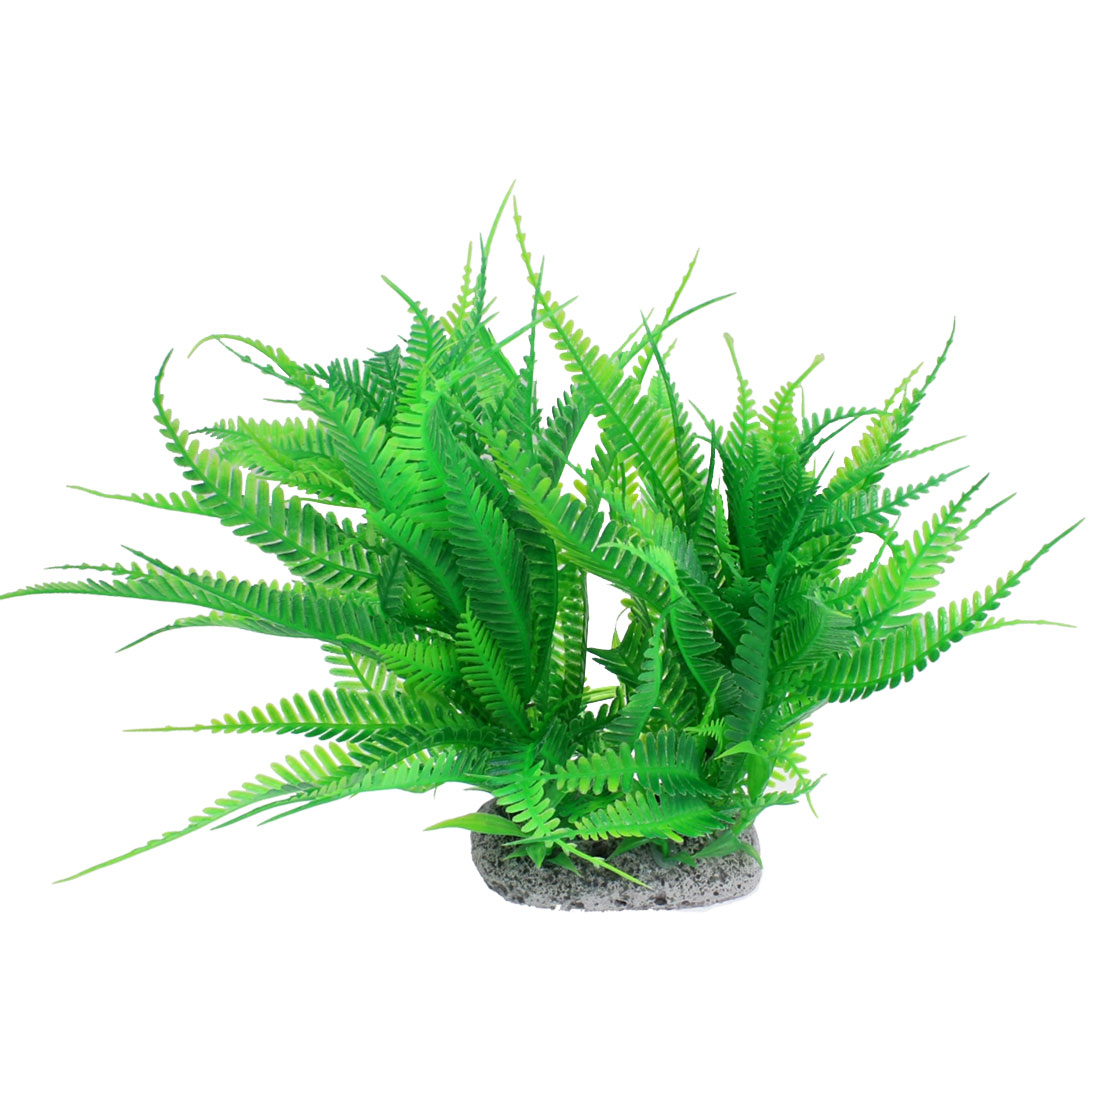 "9.8"" Height Green Artificial Plastic Slim Leaf Plant for Aquarium Tank"